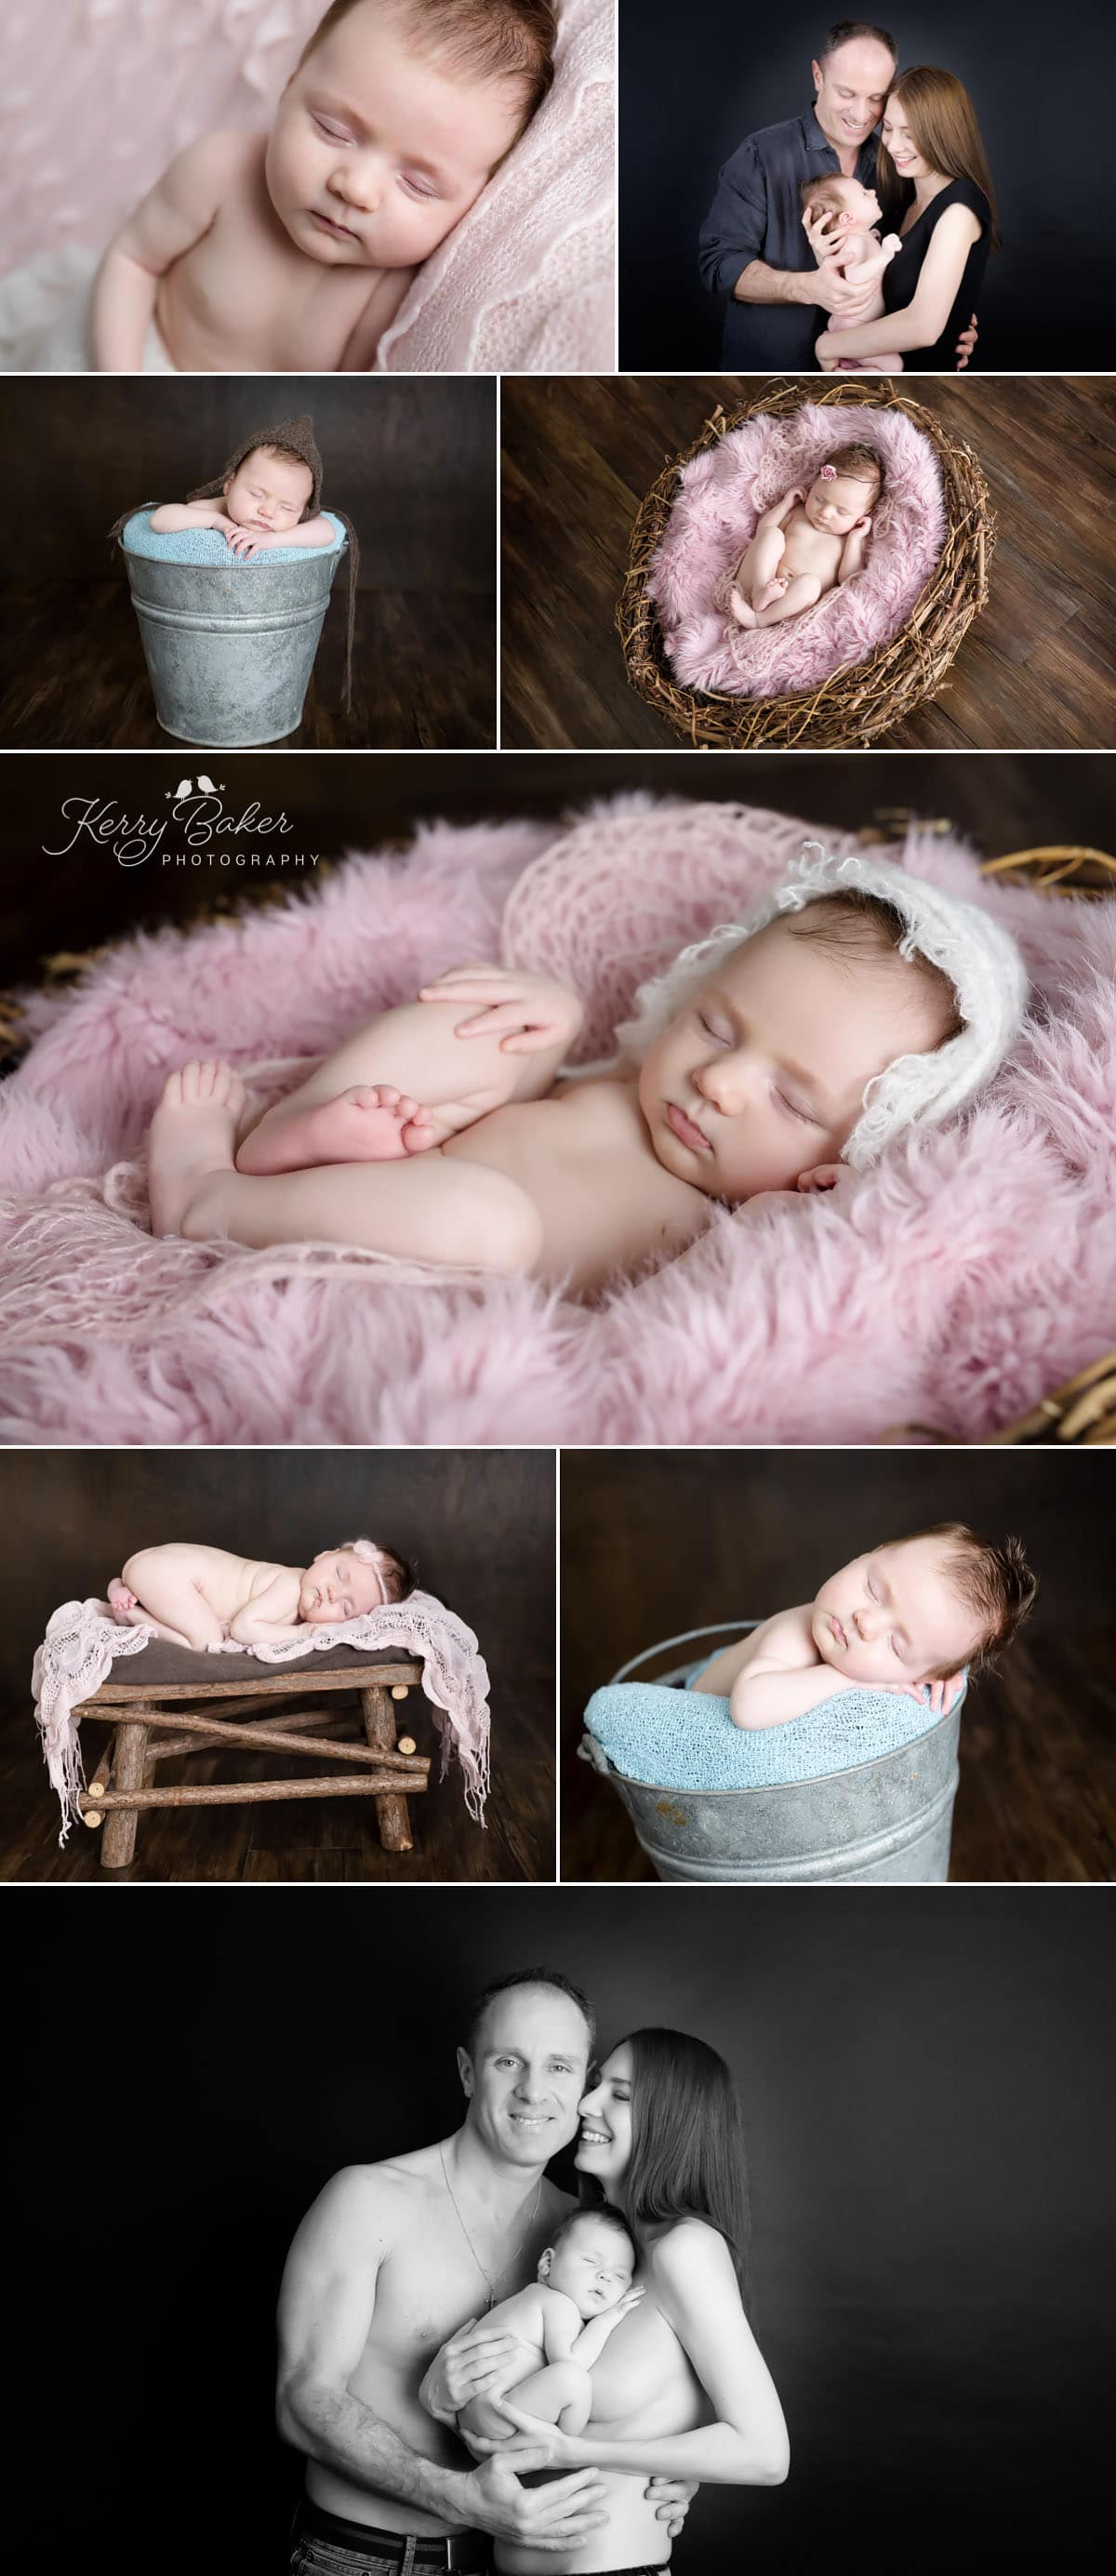 7 week baby photos with family newborn photos perth